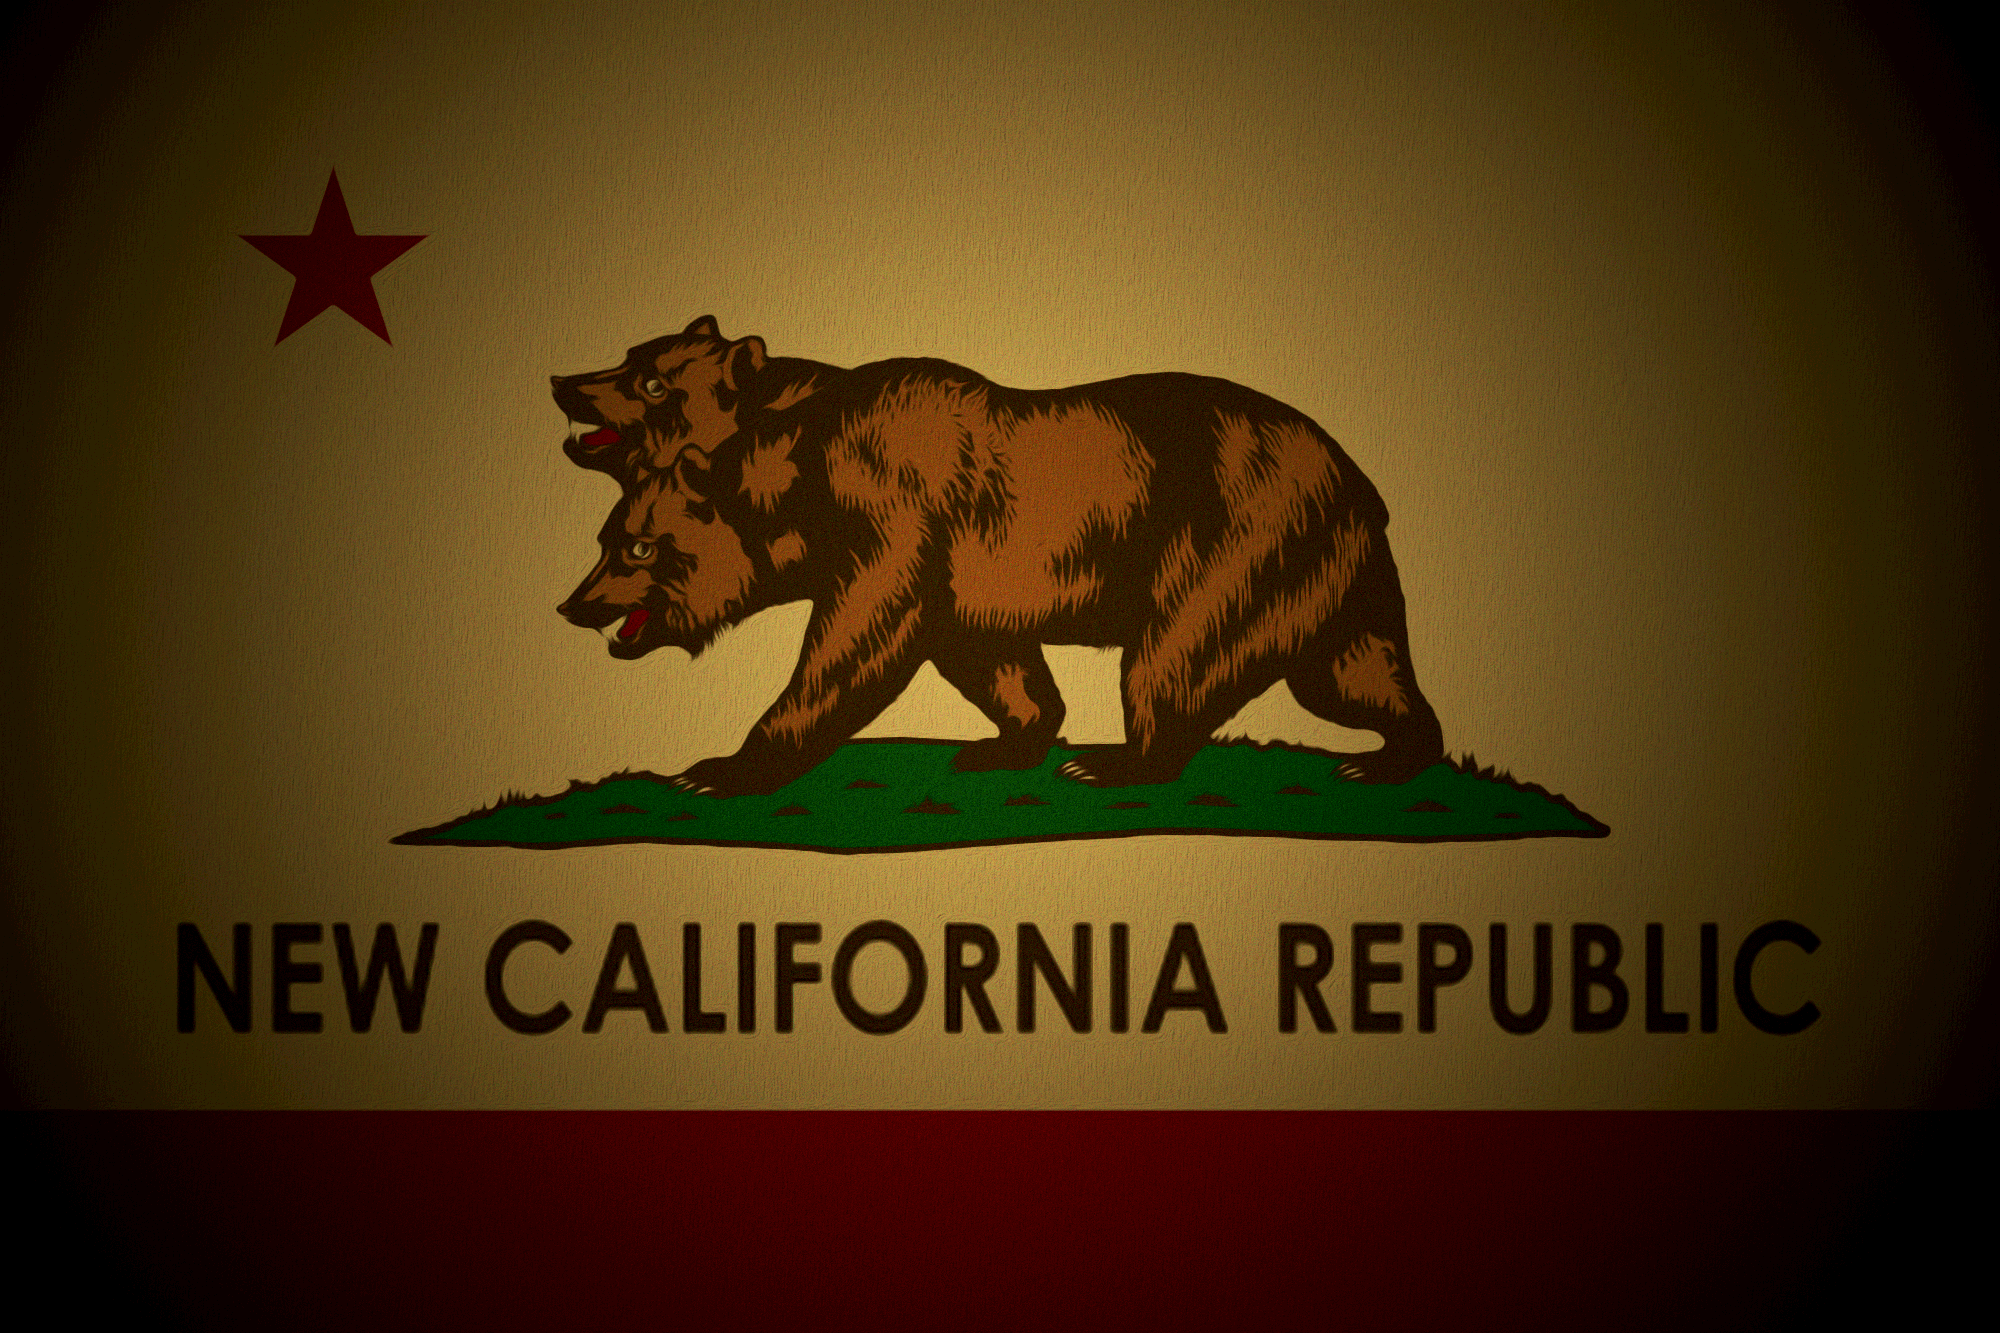 New California Republic by Gnarly Gnome 2000x1333